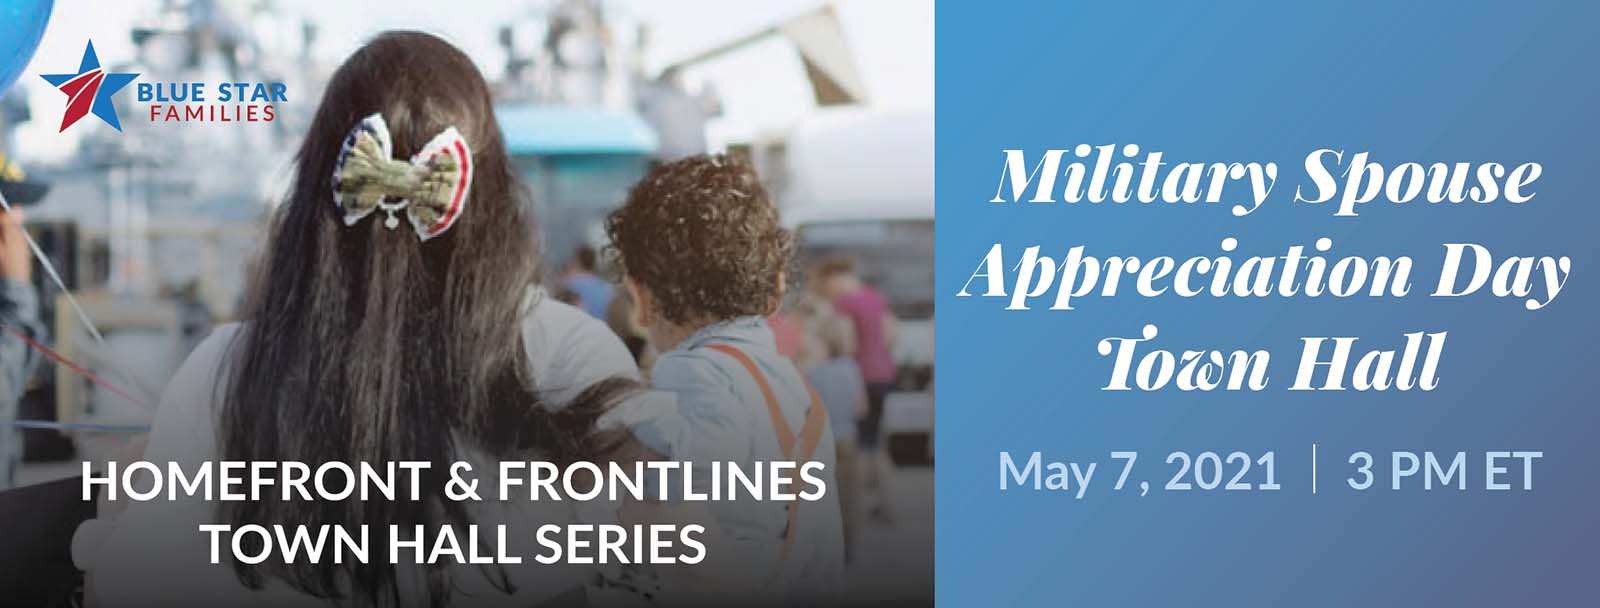 BSF MilSpouse Appreciation Day Town Hall header image with mom and son